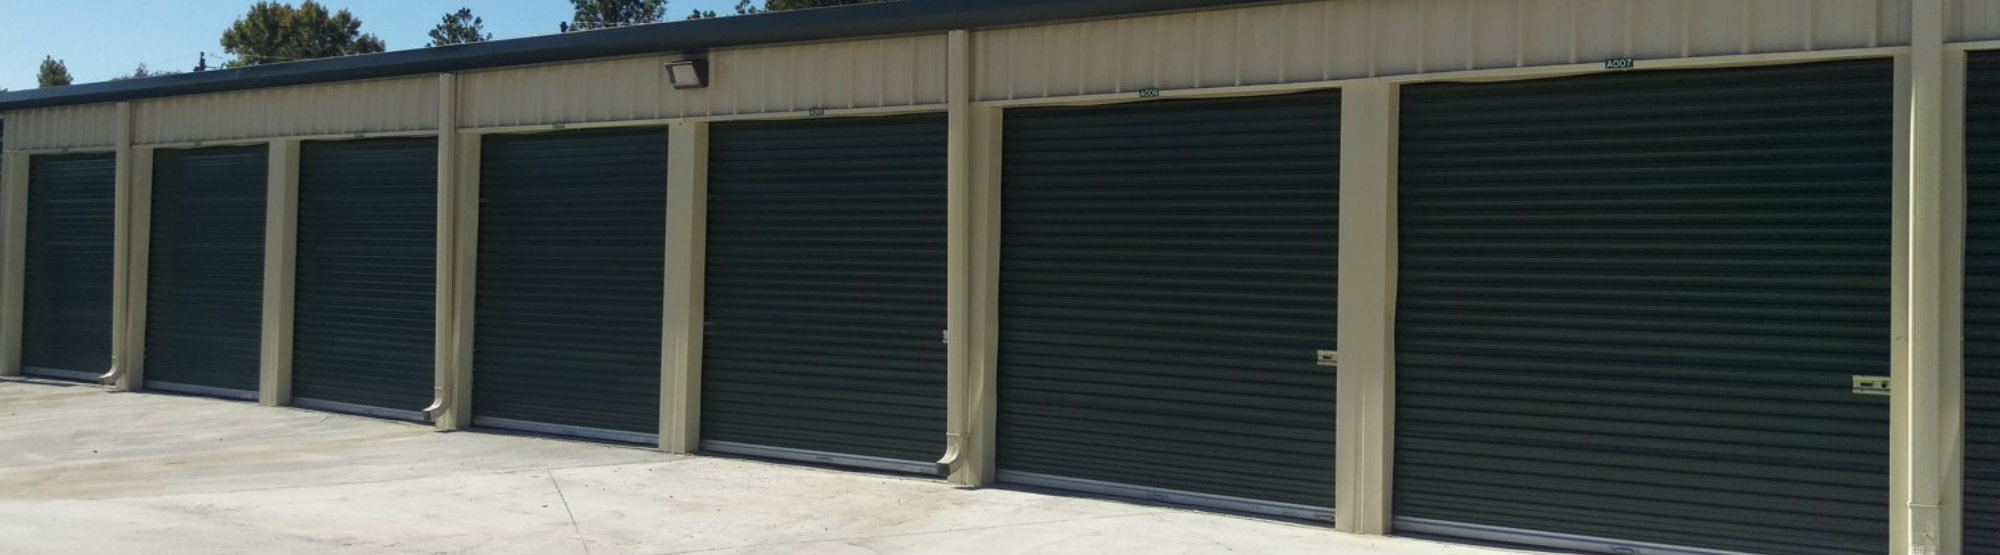 Large Drive Up Storage Units